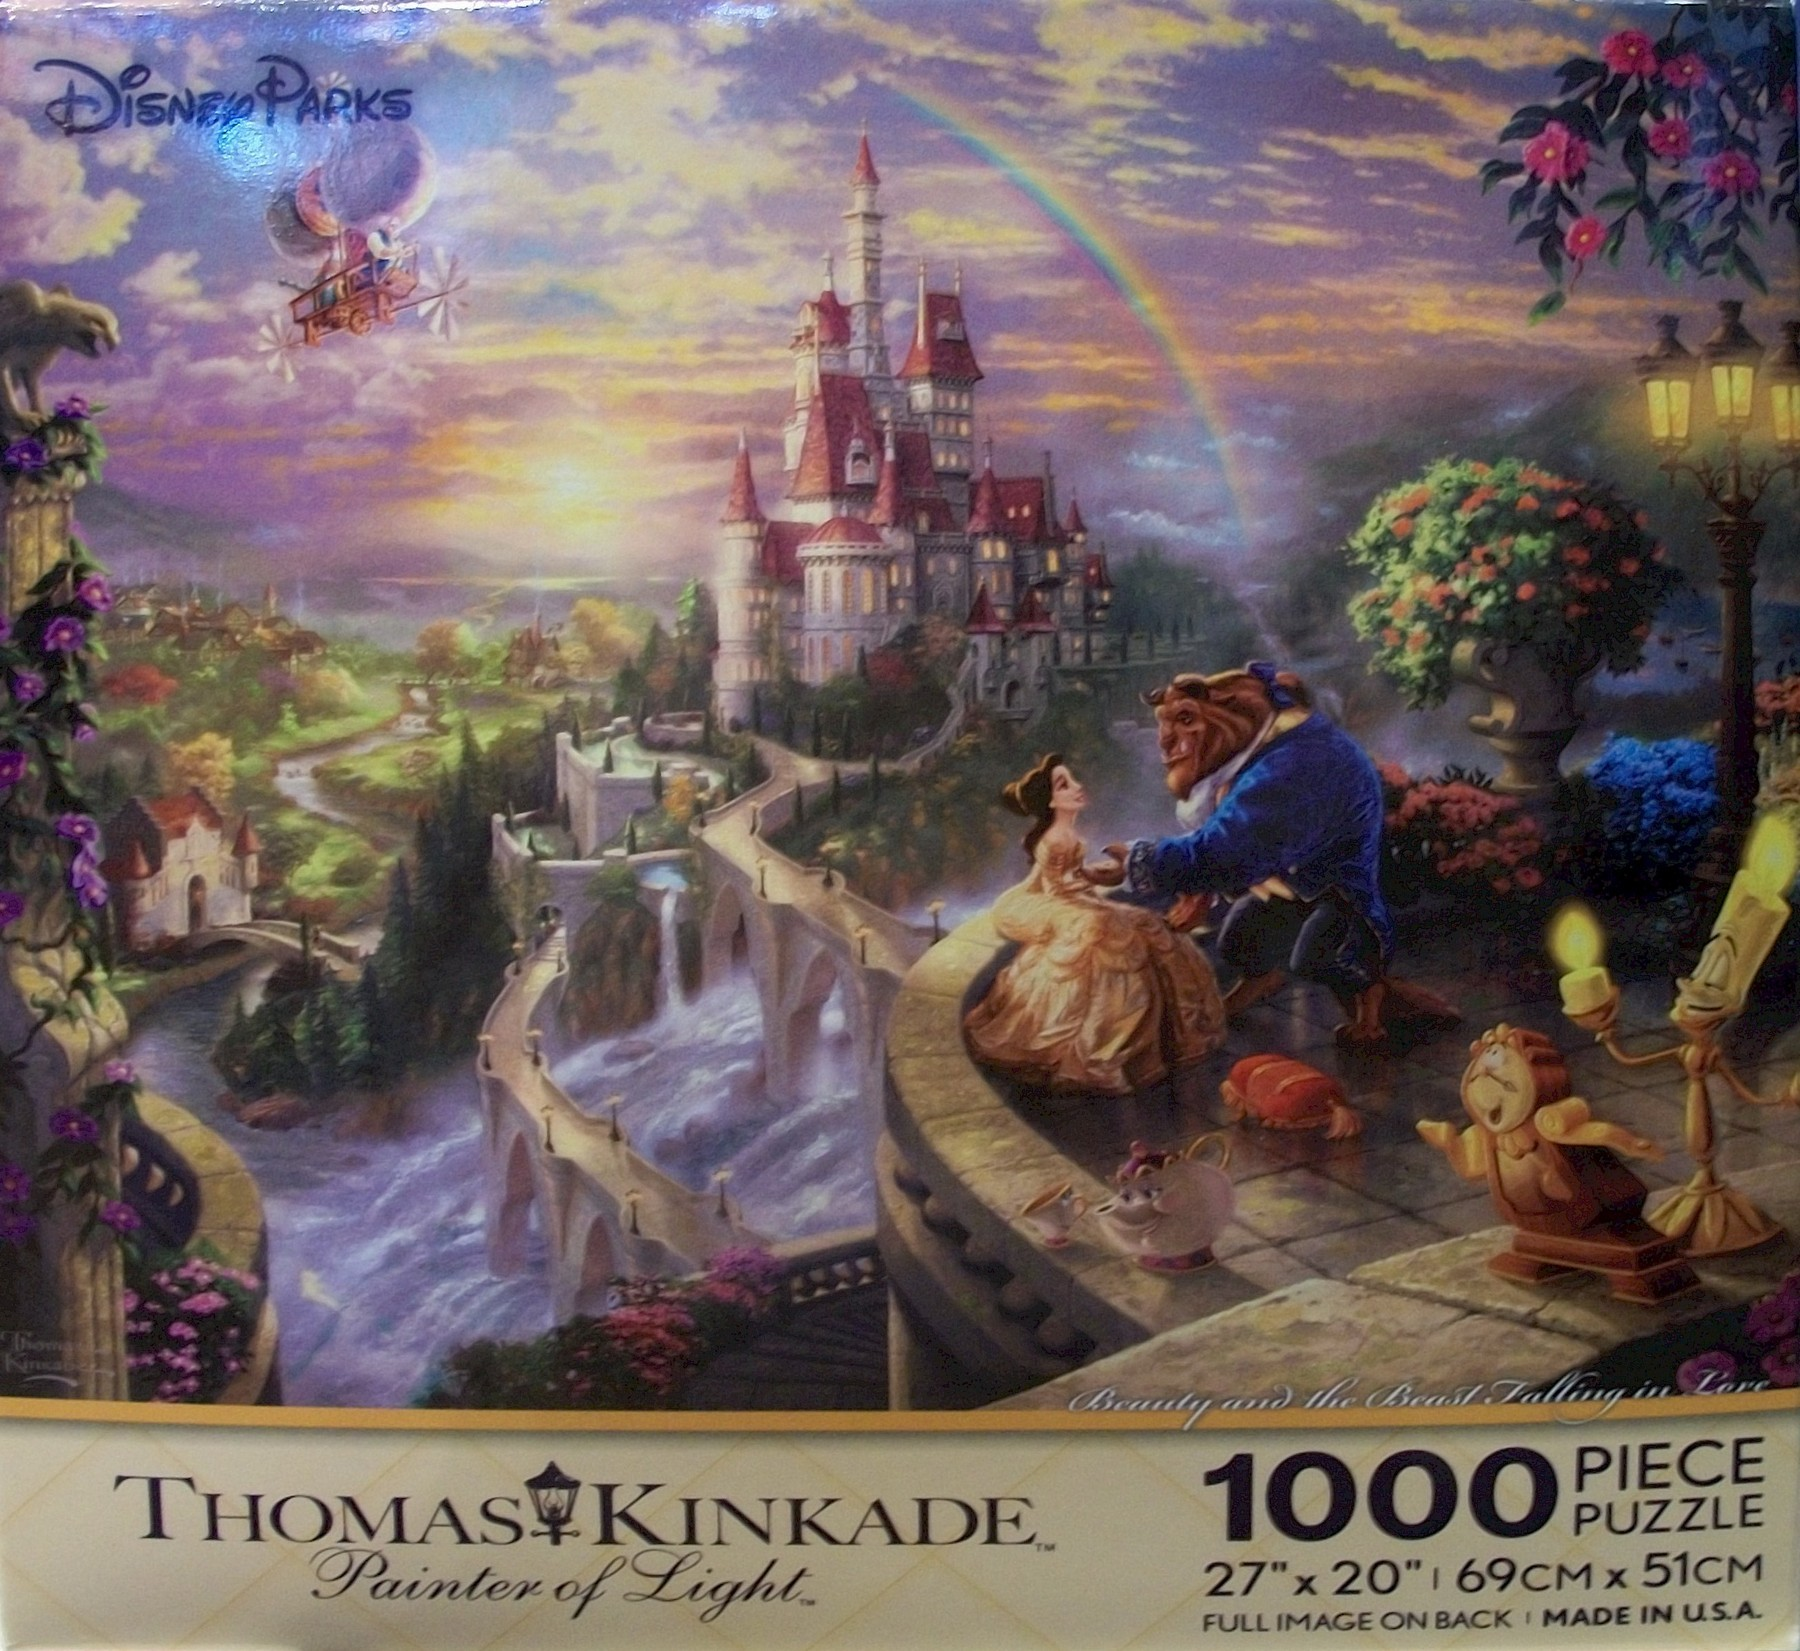 Disney World Beauty And The Beast 1000 Piece Thomas Kinkade Jigsaw Puzzle © Dizdude.com